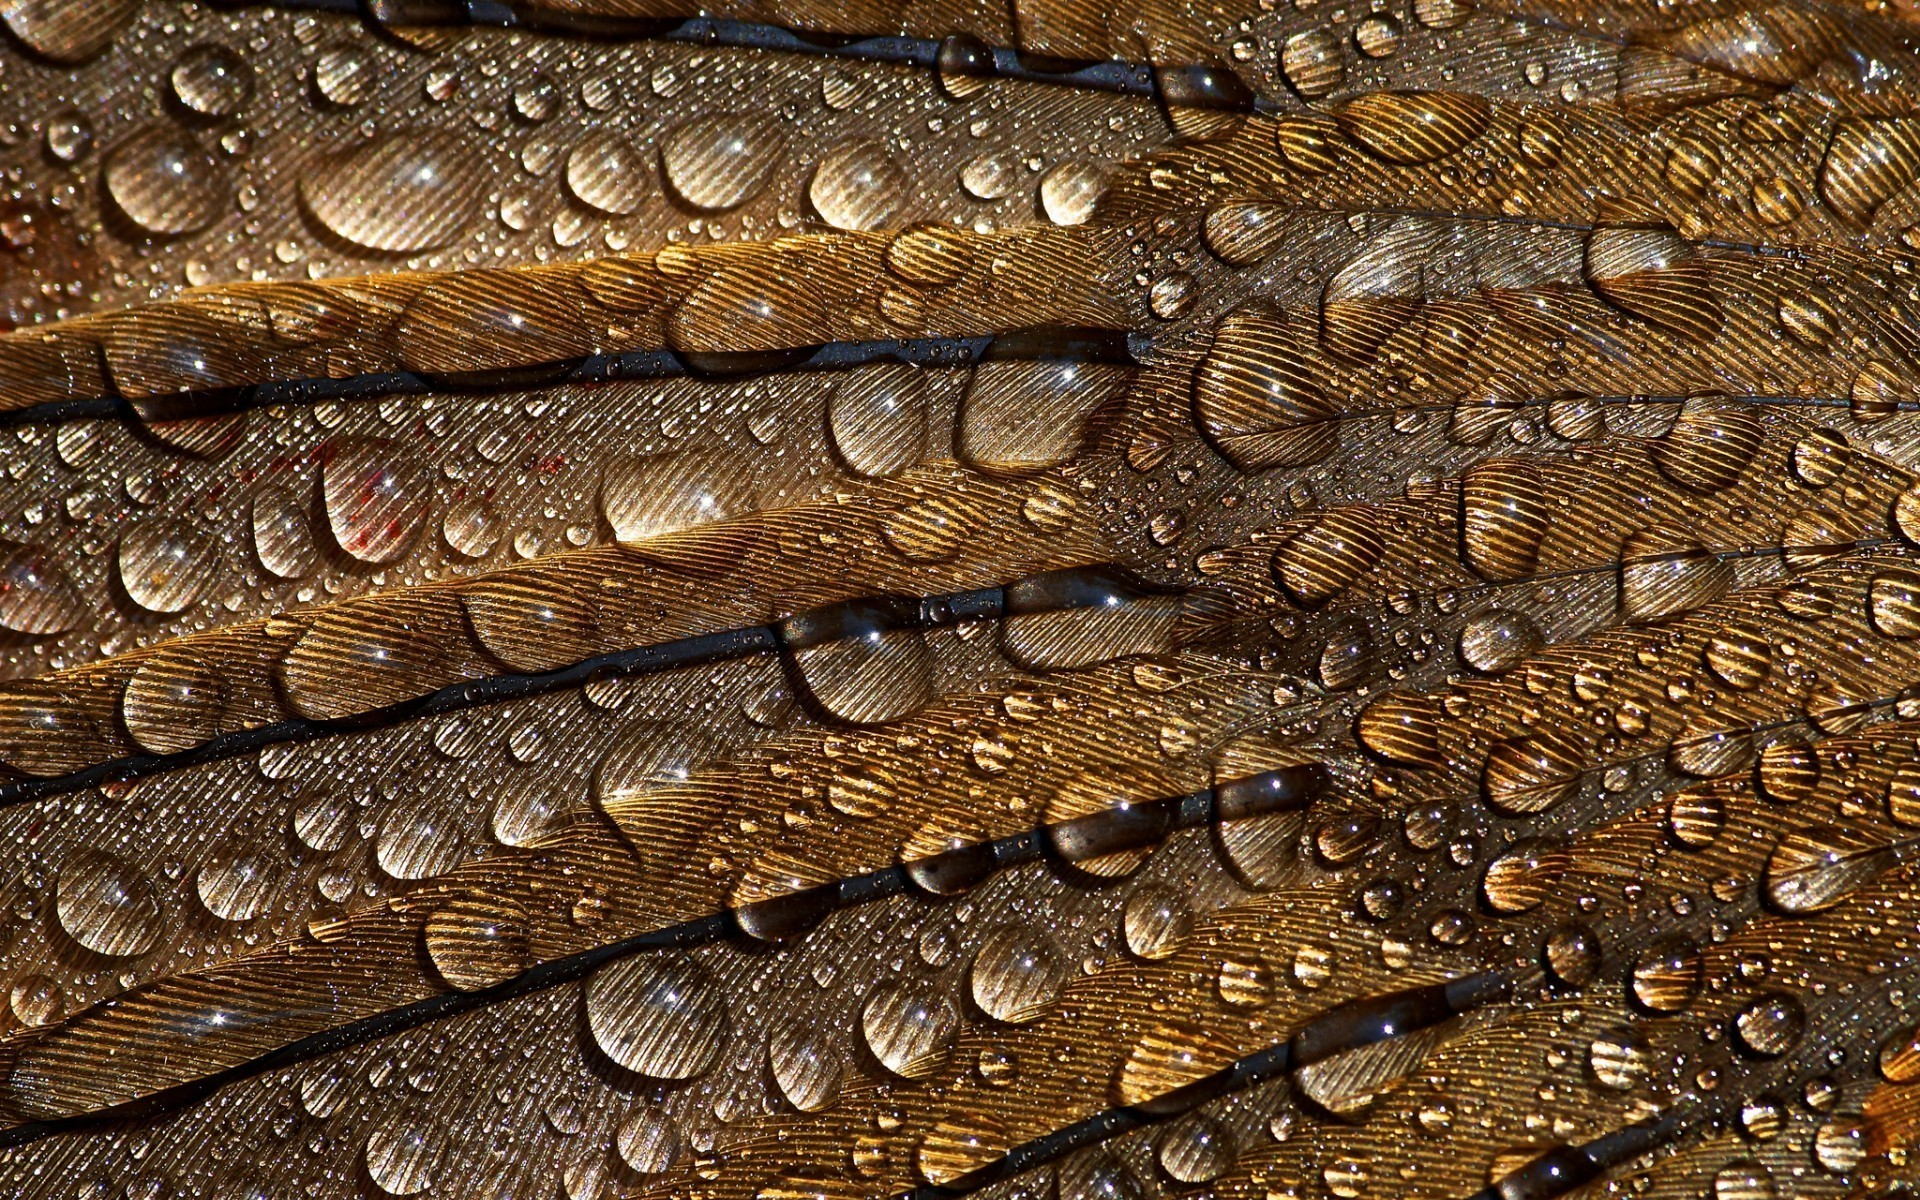 Wallpaper for your iphone 320x480 hd peacock feather iphone wallpapers - Water Drops And Feathers Wallpaper Allwallpaper In 7291